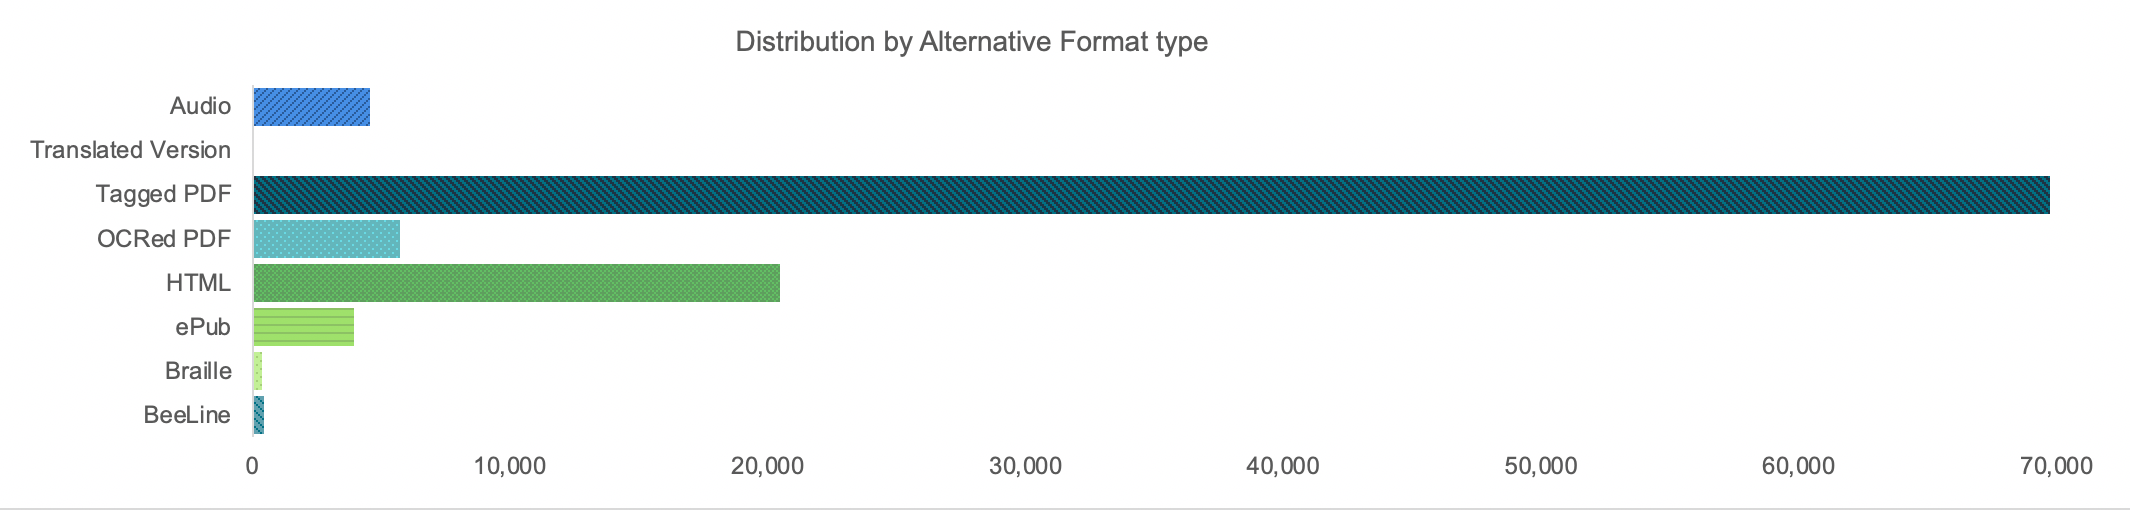 Distribution by type of alternative format